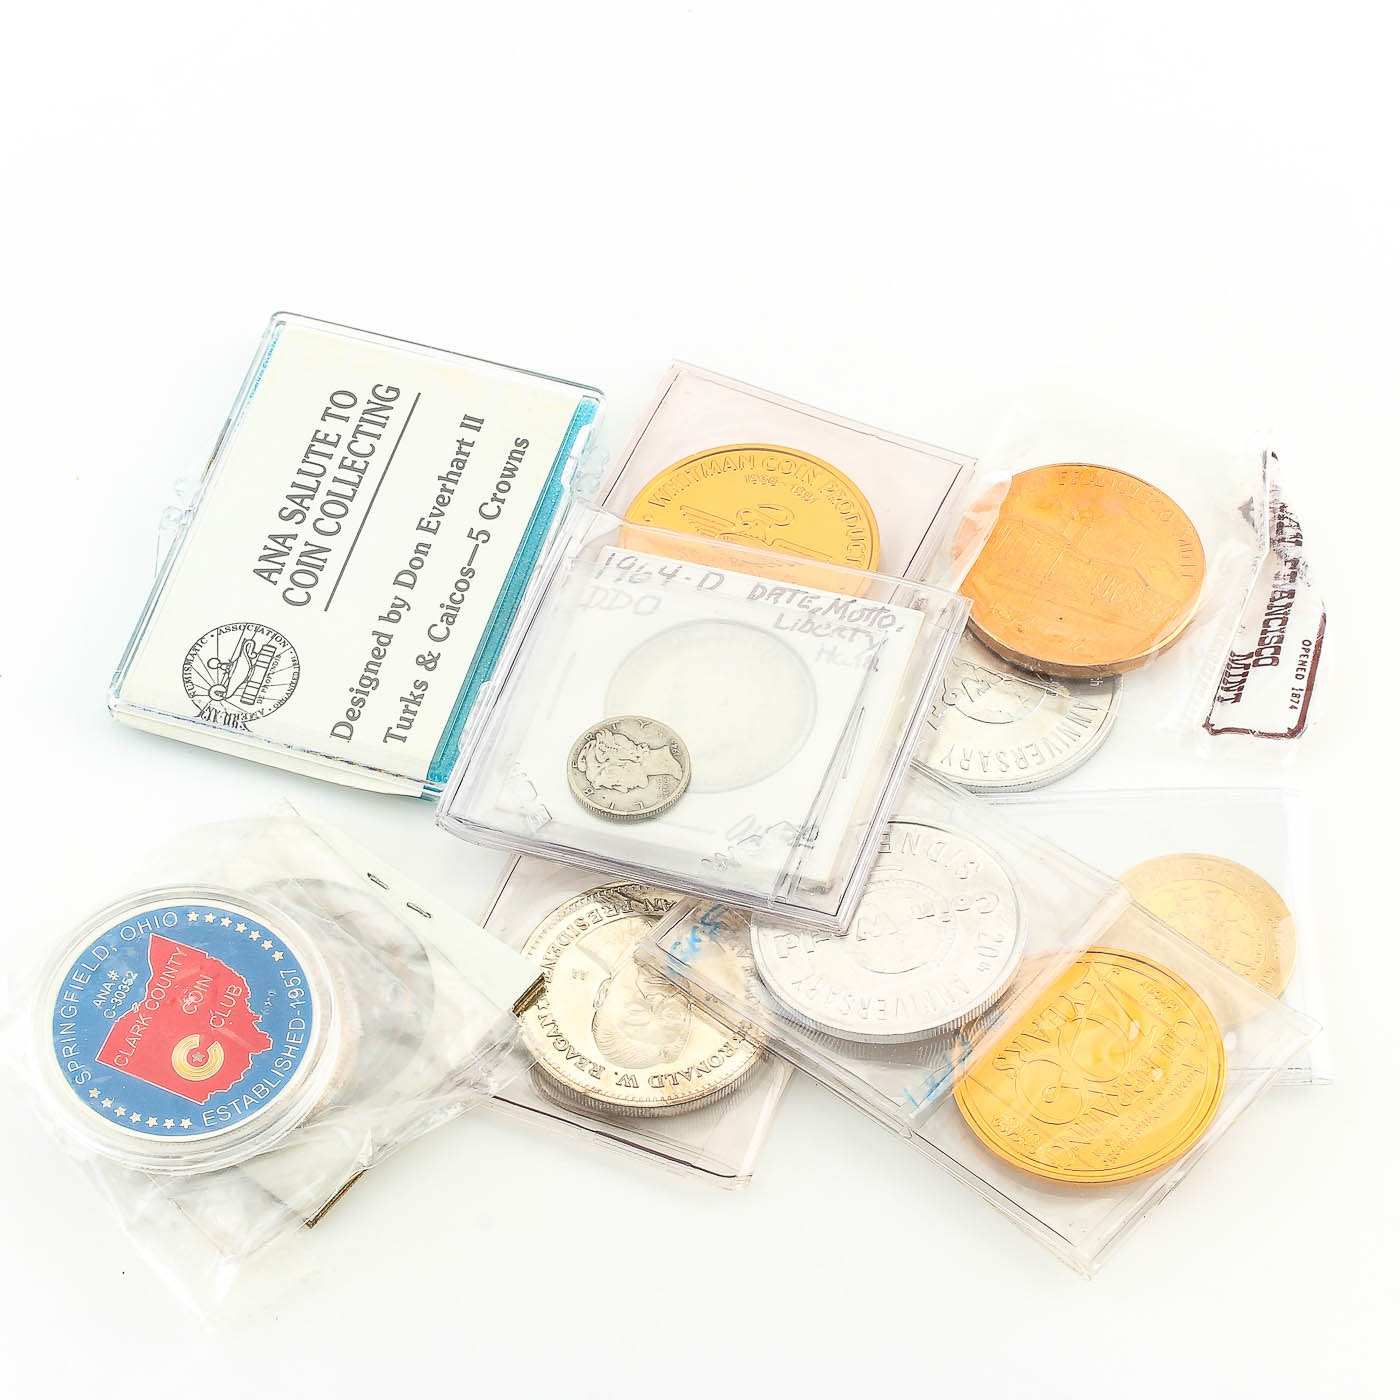 Eleven Tokens and Commemorative Coins